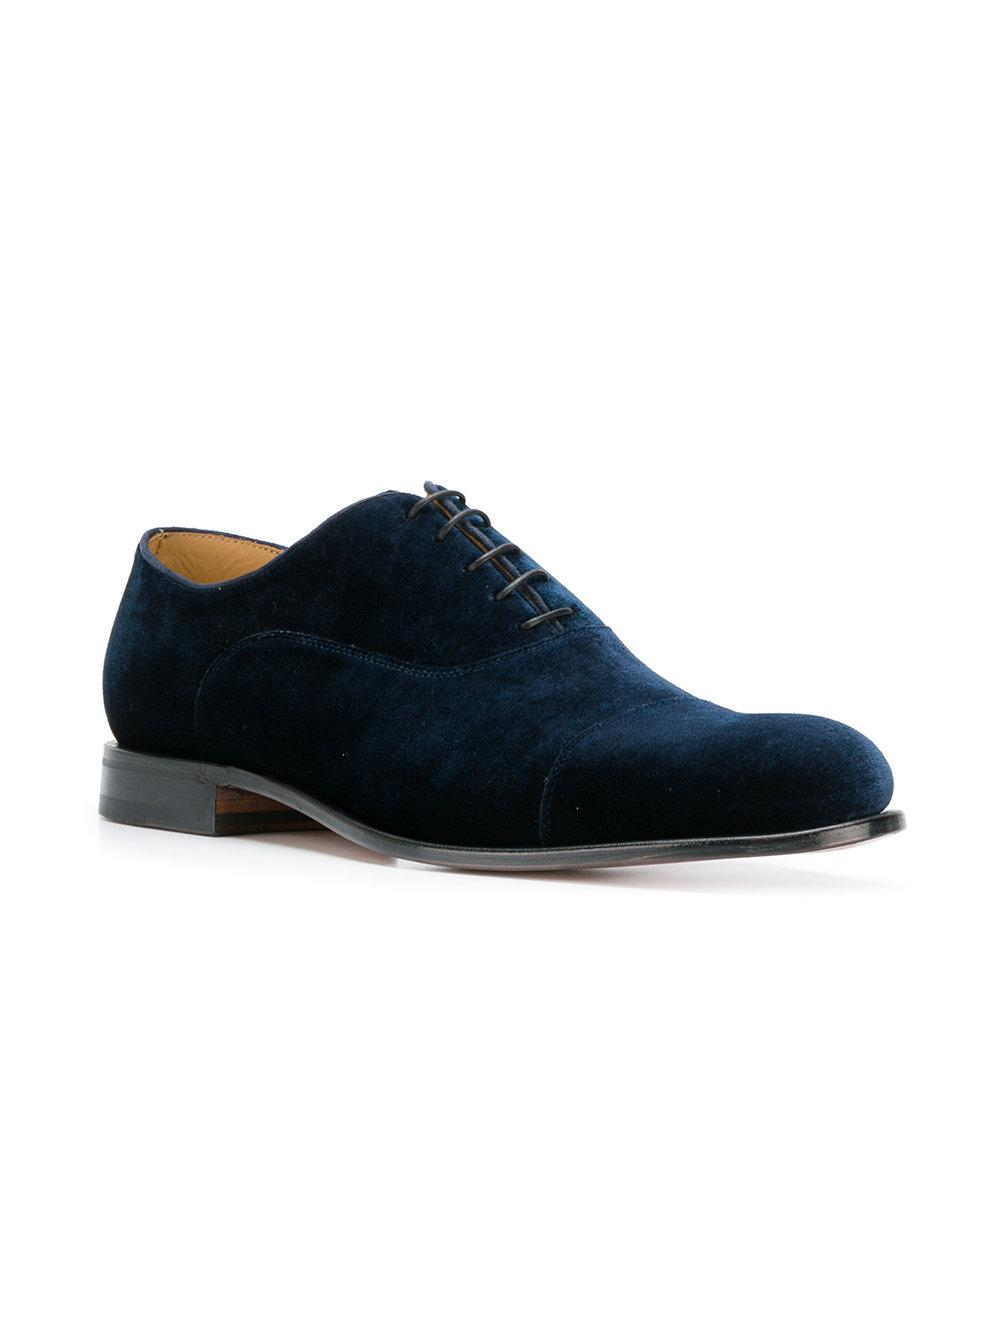 classic lace-up shoes - Blue Steves HTpB8O